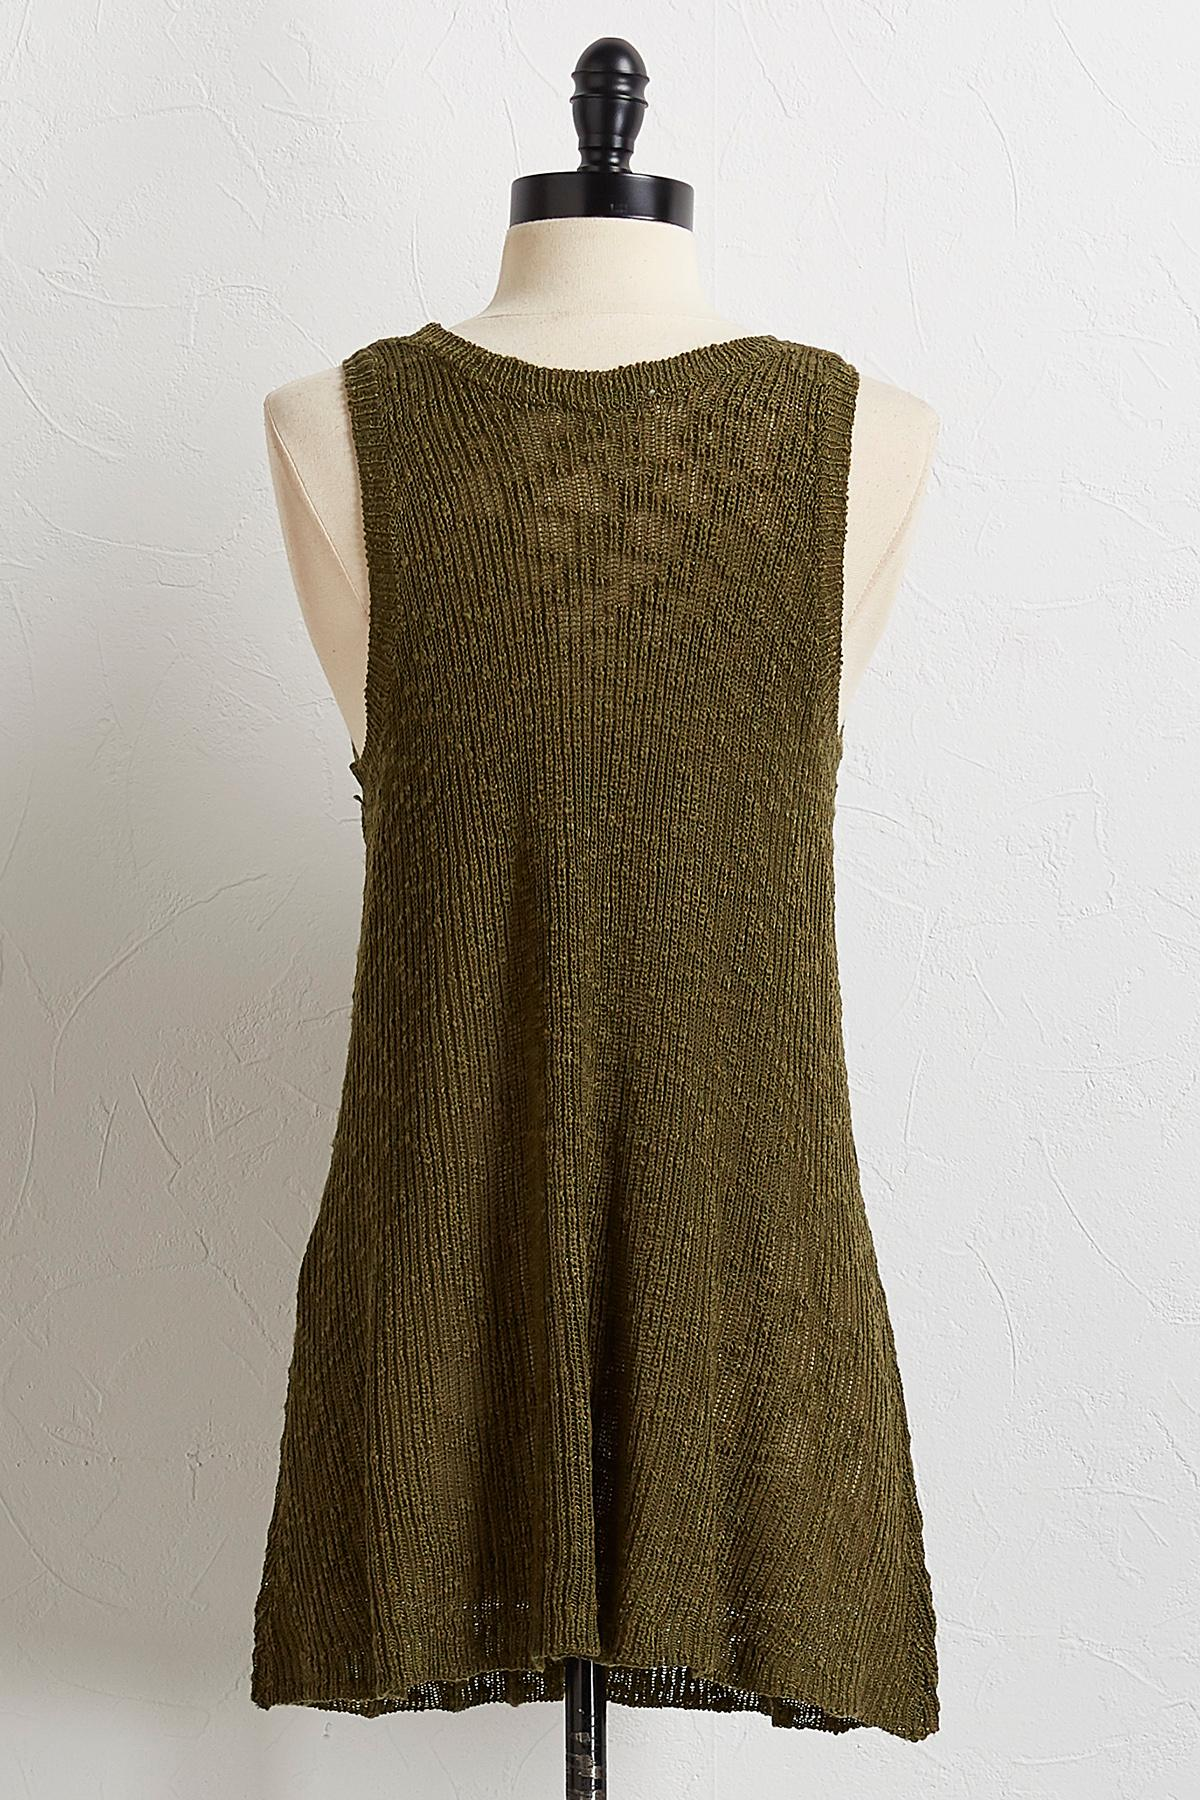 Olive Slub Knit Sweater Tank